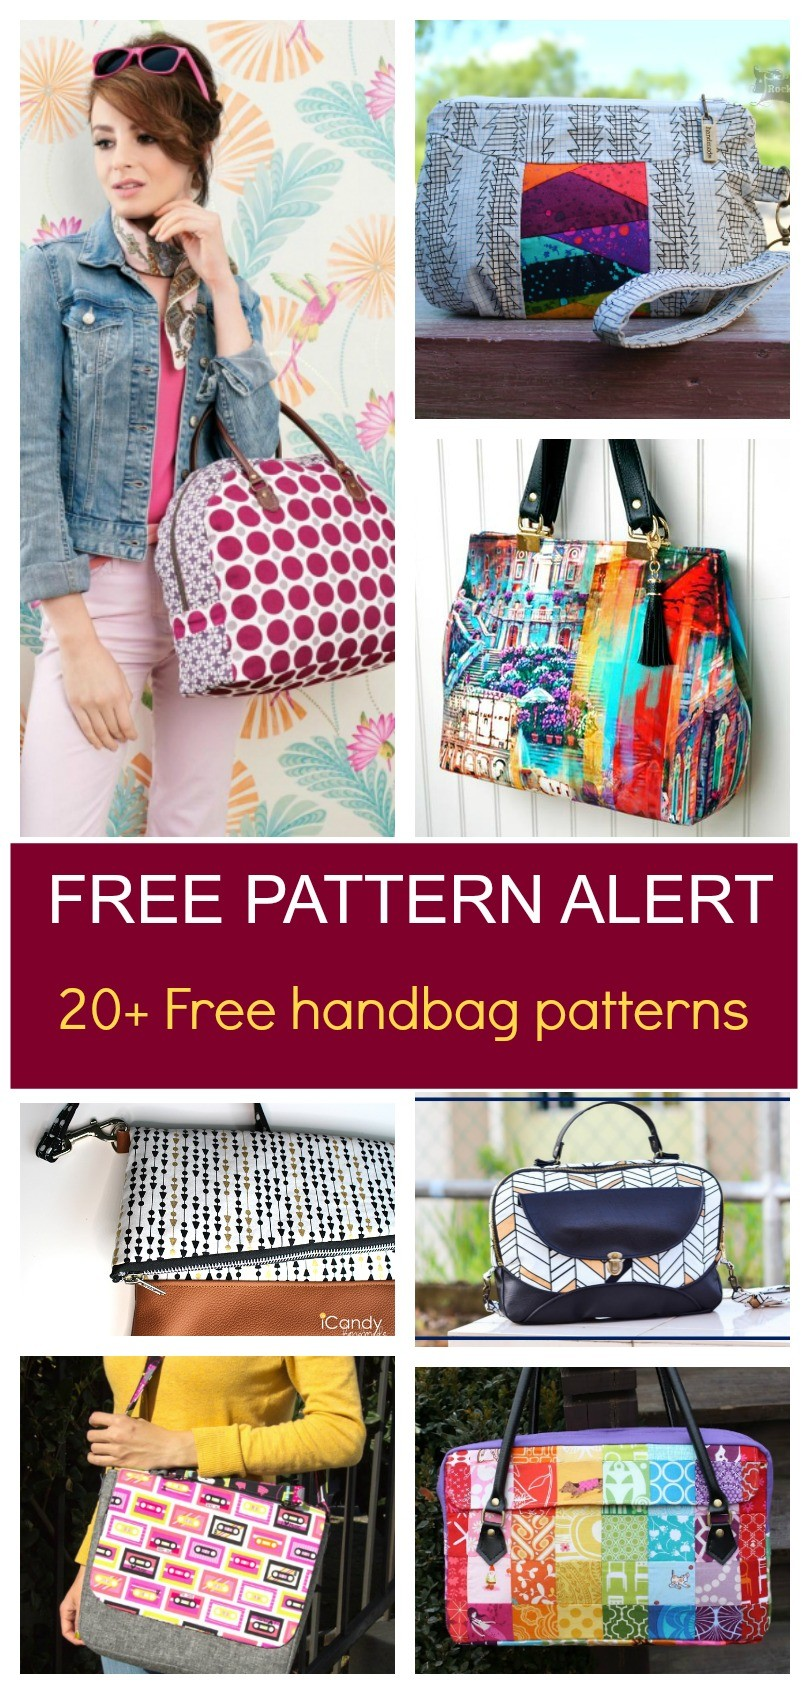 graphic about Handbag Patterns Free Printable known as Totally free Routine Inform: 20+ Handbag sewing habits Upon the